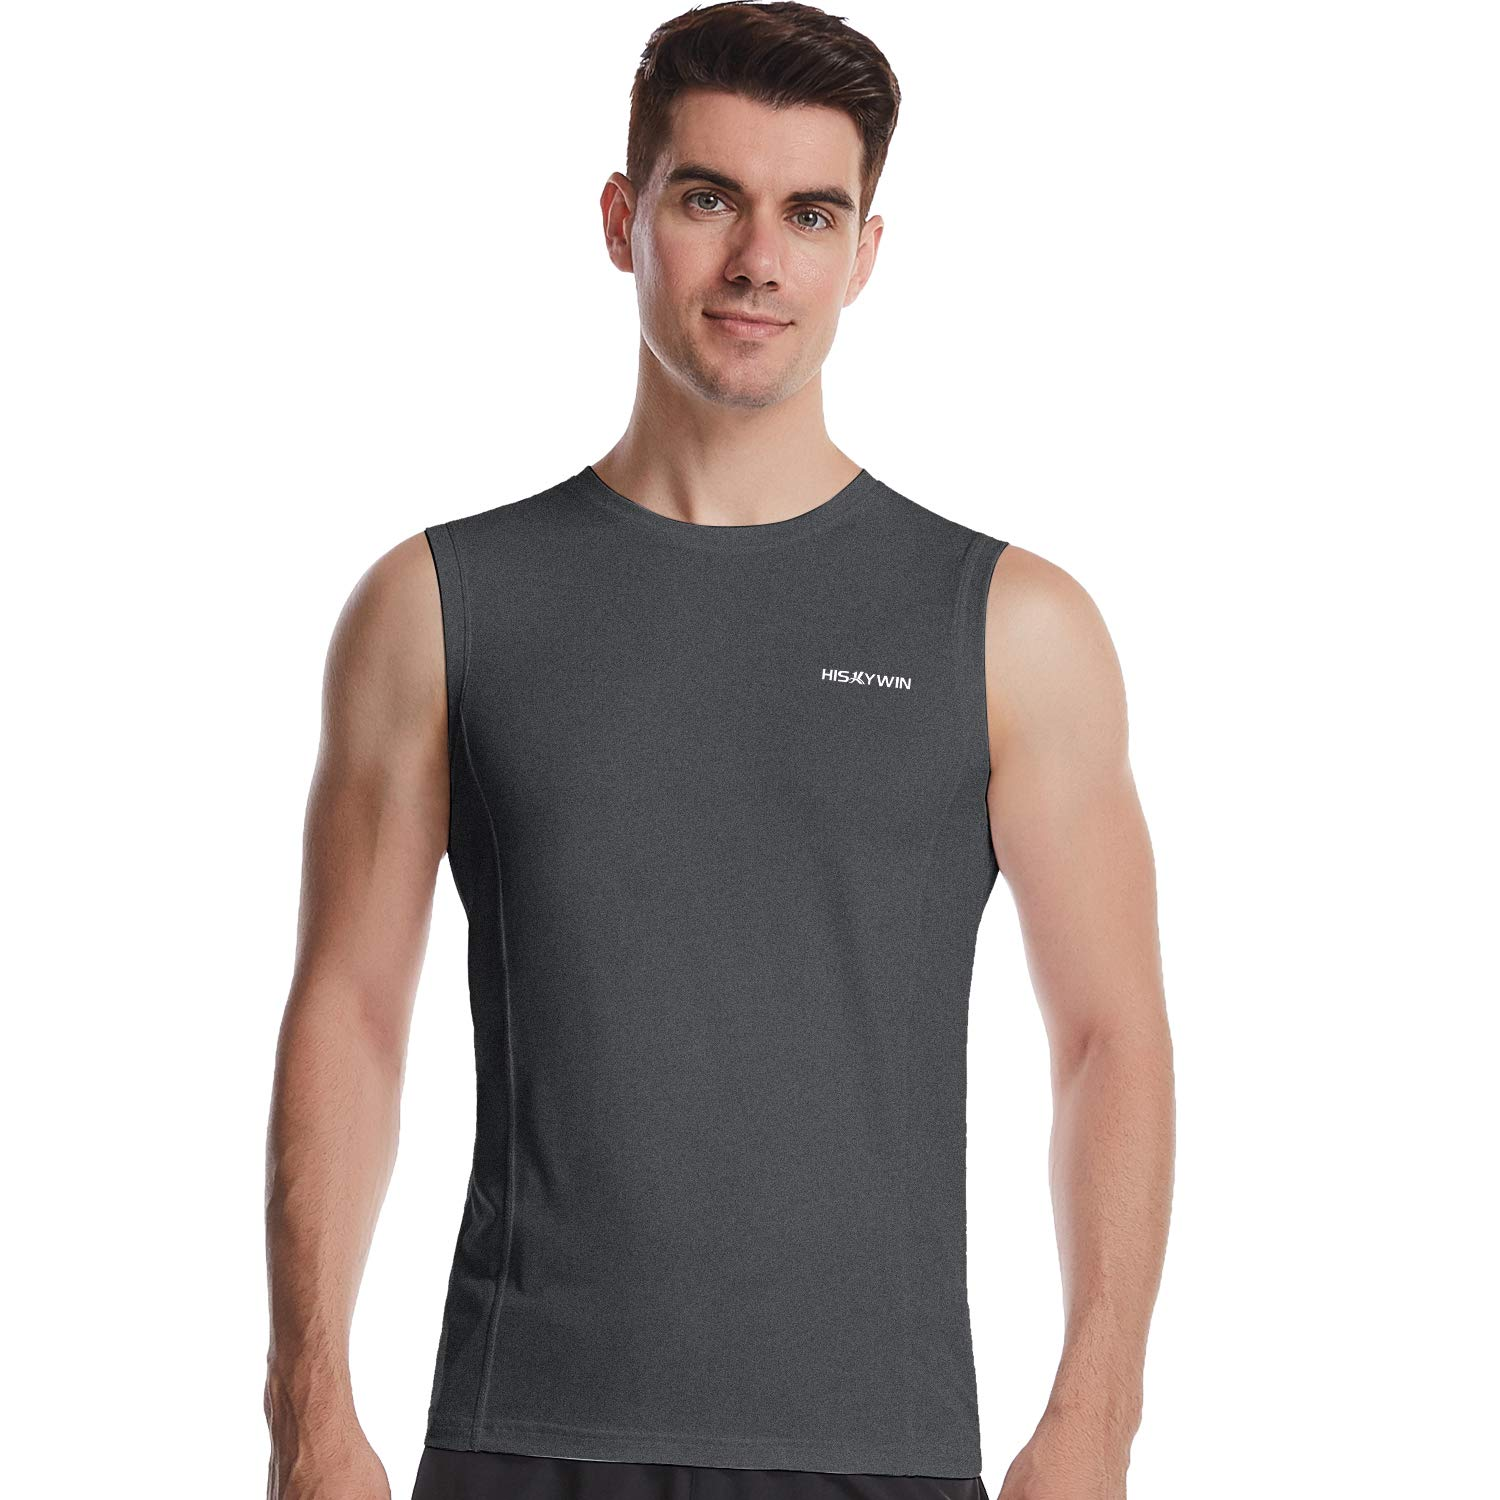 HISKYWIN Mens Basic Solid Workout Bodybuilding Tank-Tops Quick-Dry Sleeveless T-Shirt Athletic-Fit Vest Undershirt